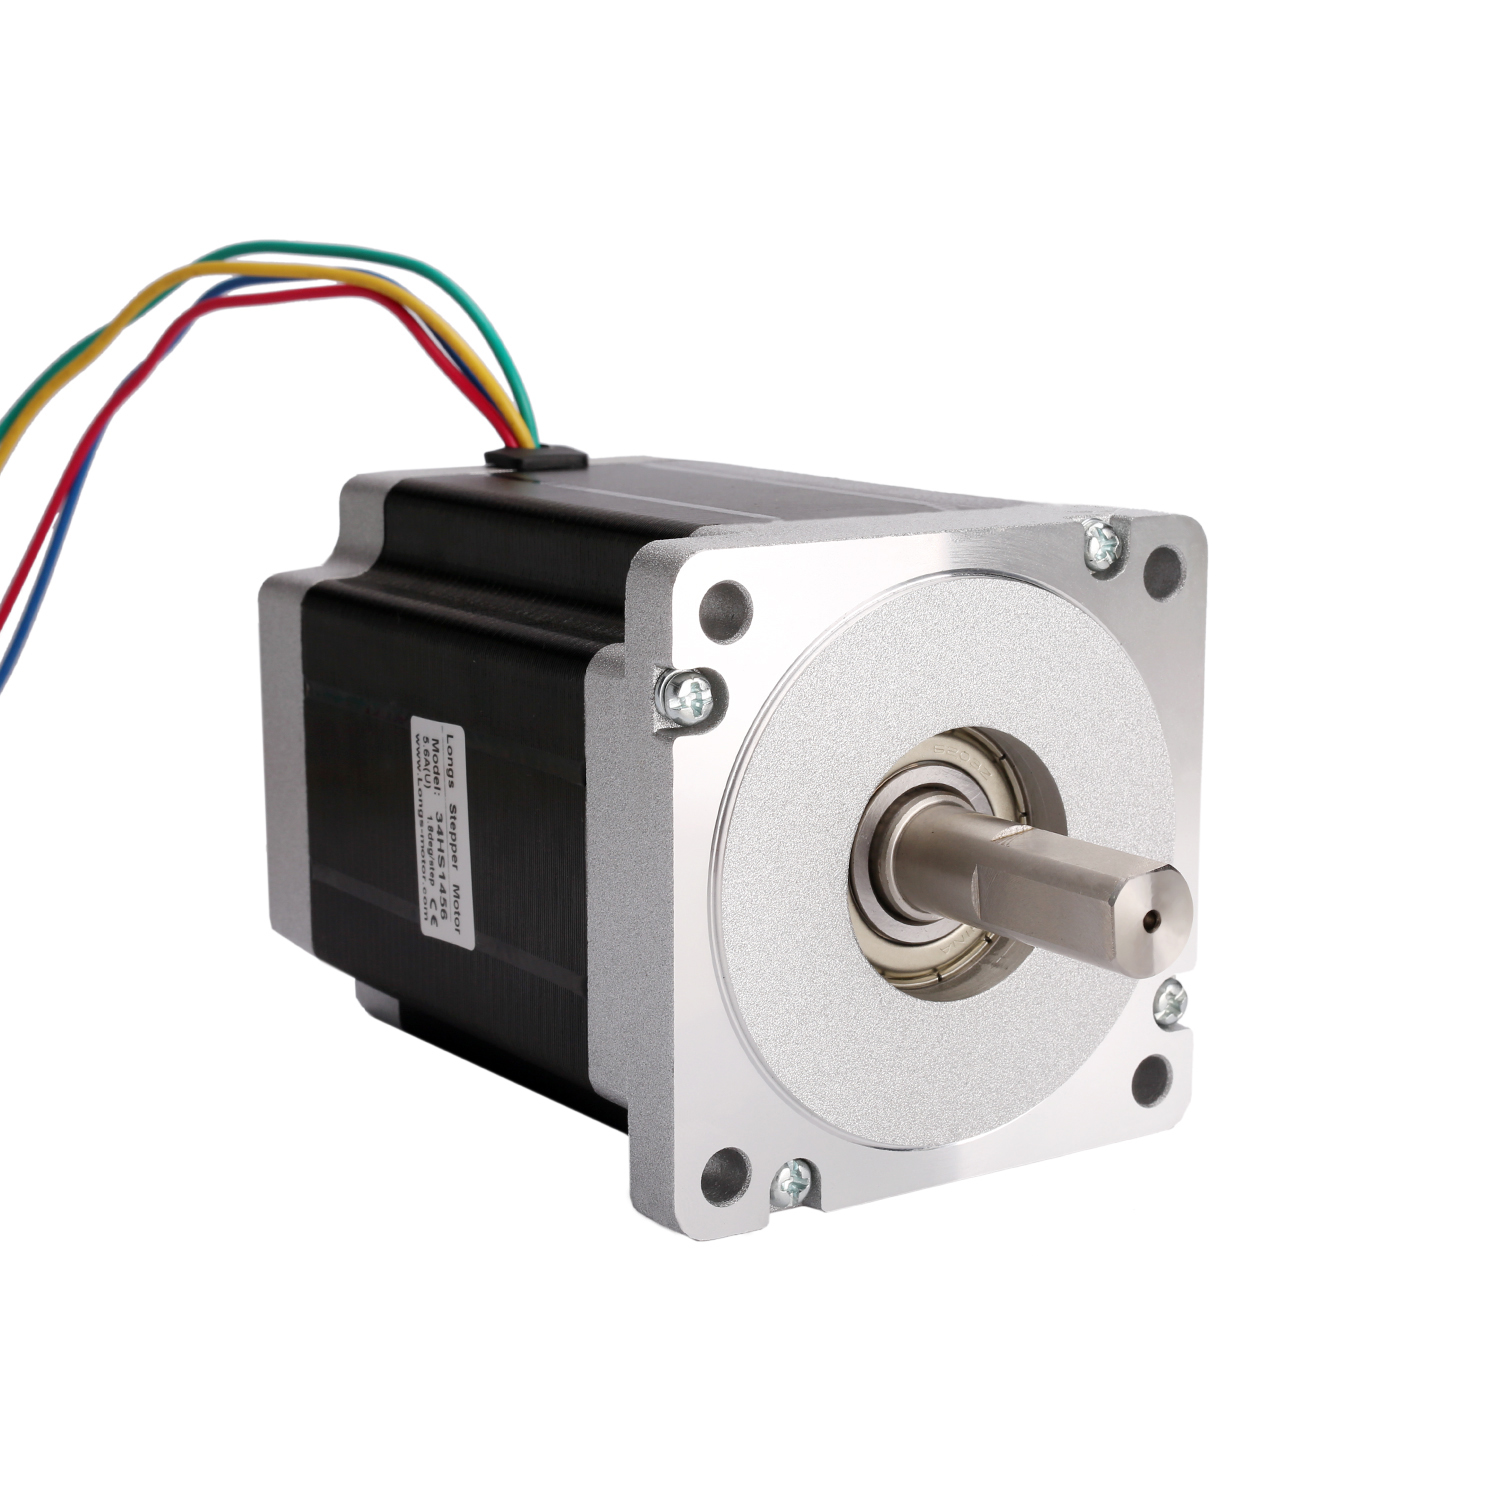 Hybrid Stepper MOTOR-Nema34 Featured Bildo